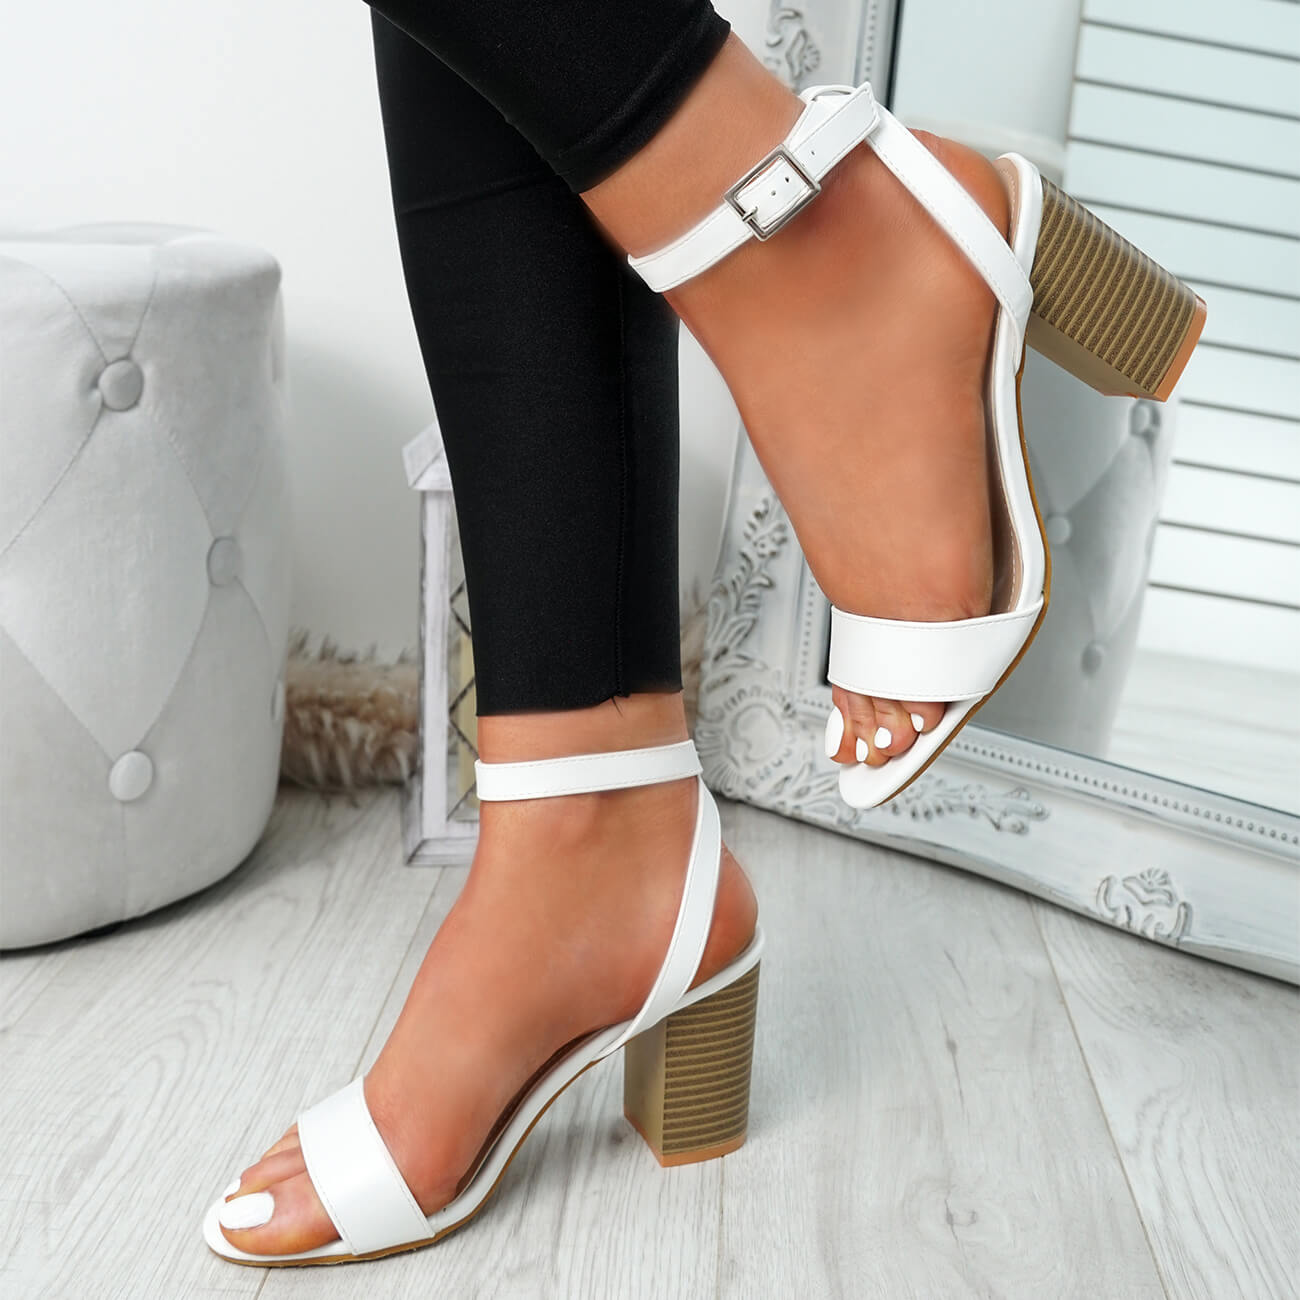 WOMENS-LADIES-PEEP-TOE-HIGH-BLOCK-HEEL-SANDALS-ANKLE-STRAP-PARTY-SHOES-SIZE thumbnail 18